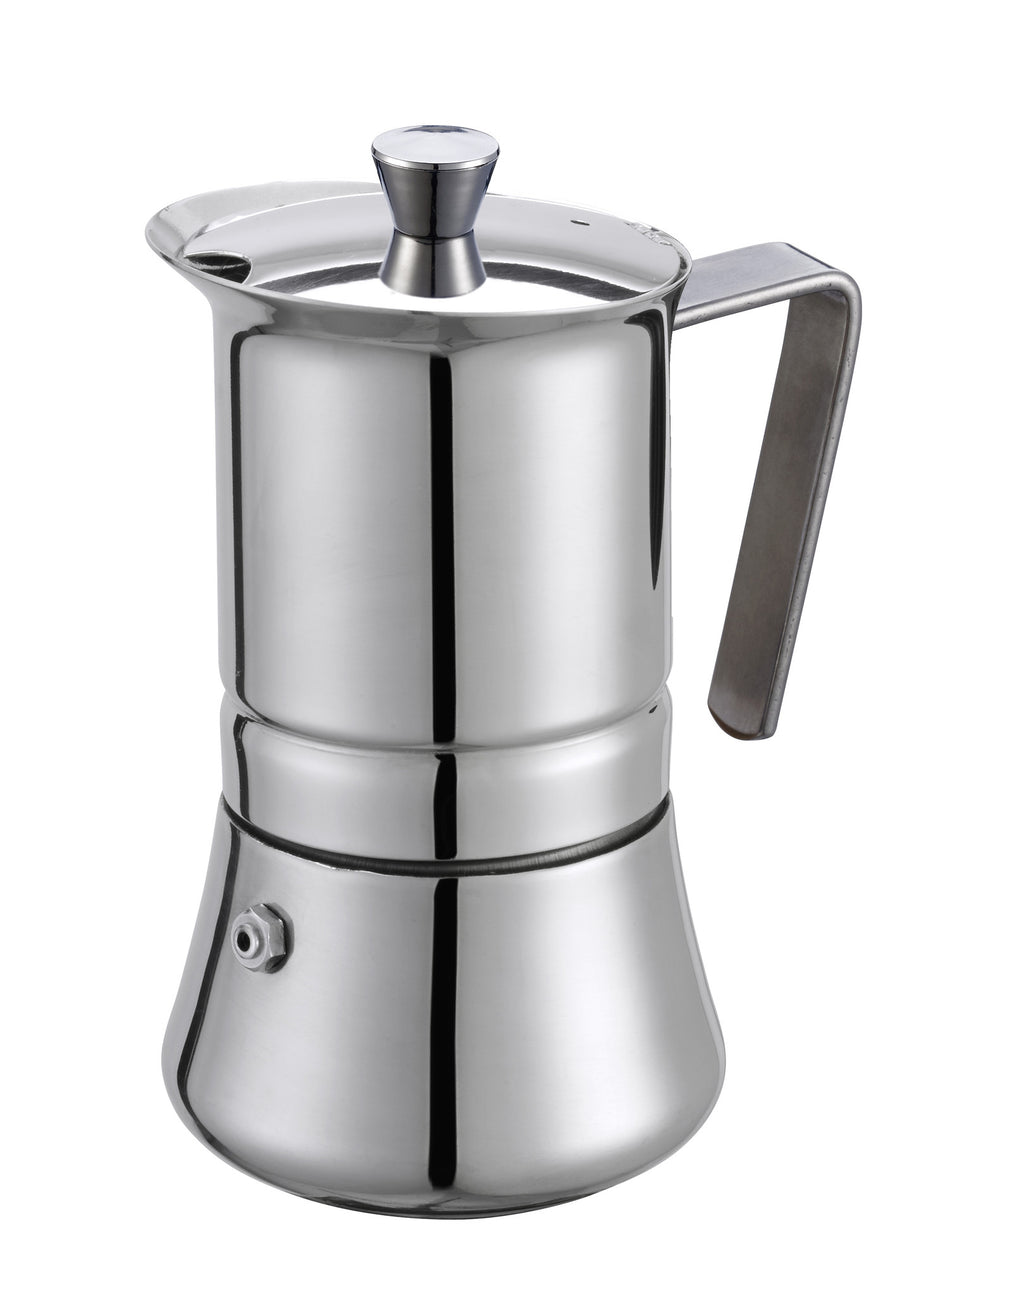 GAT PRATIKA Stovetop Espresso Coffee Maker STAINLESS STEEL 18/10 Made In Italy!